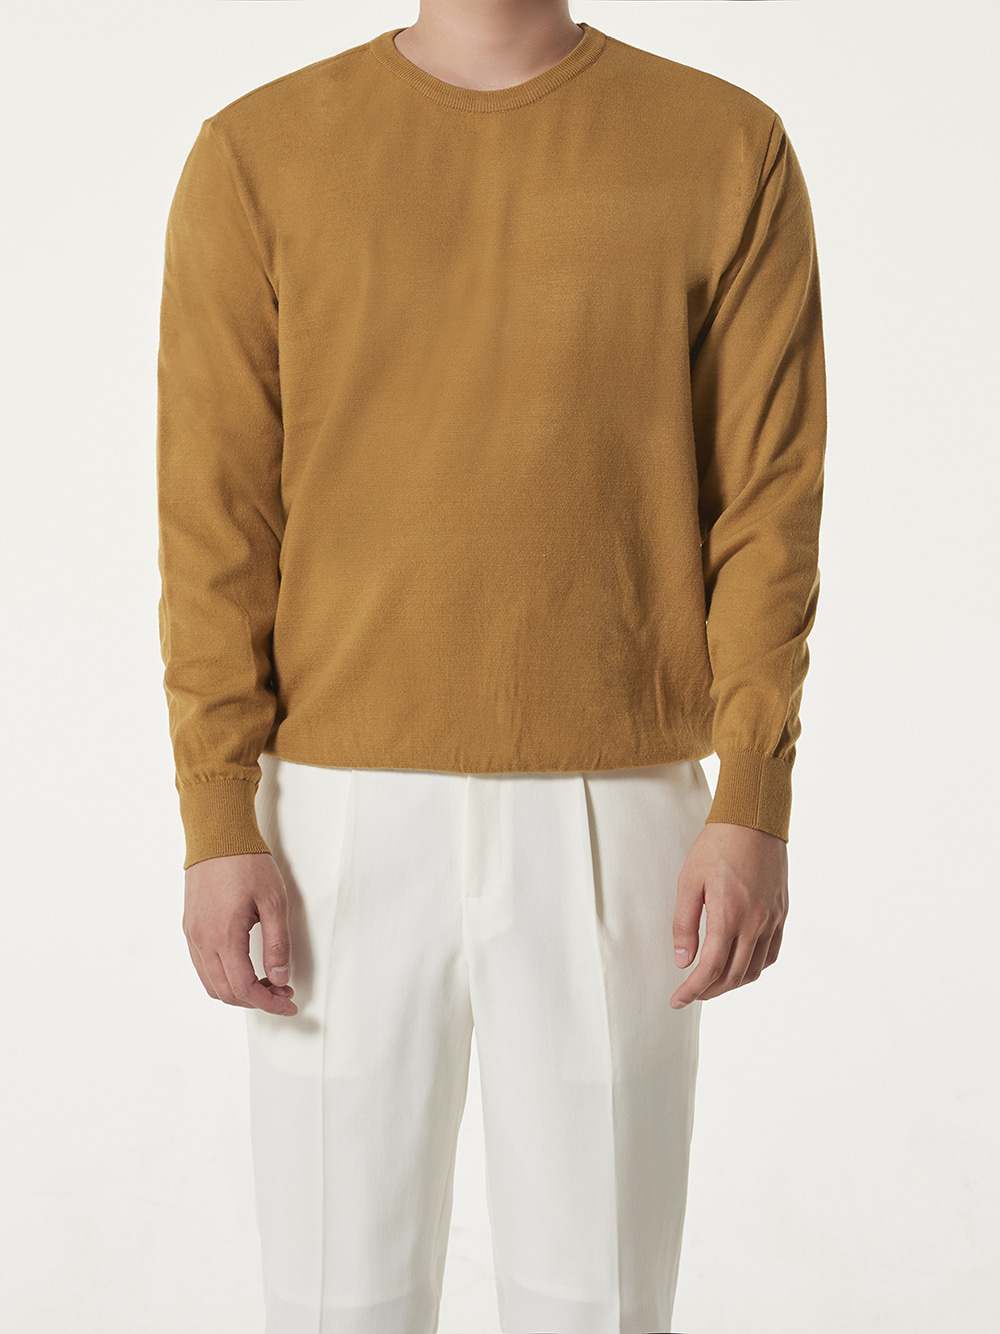 -[DEVERMAN] Soft touch solid crew neck knit (mustard)